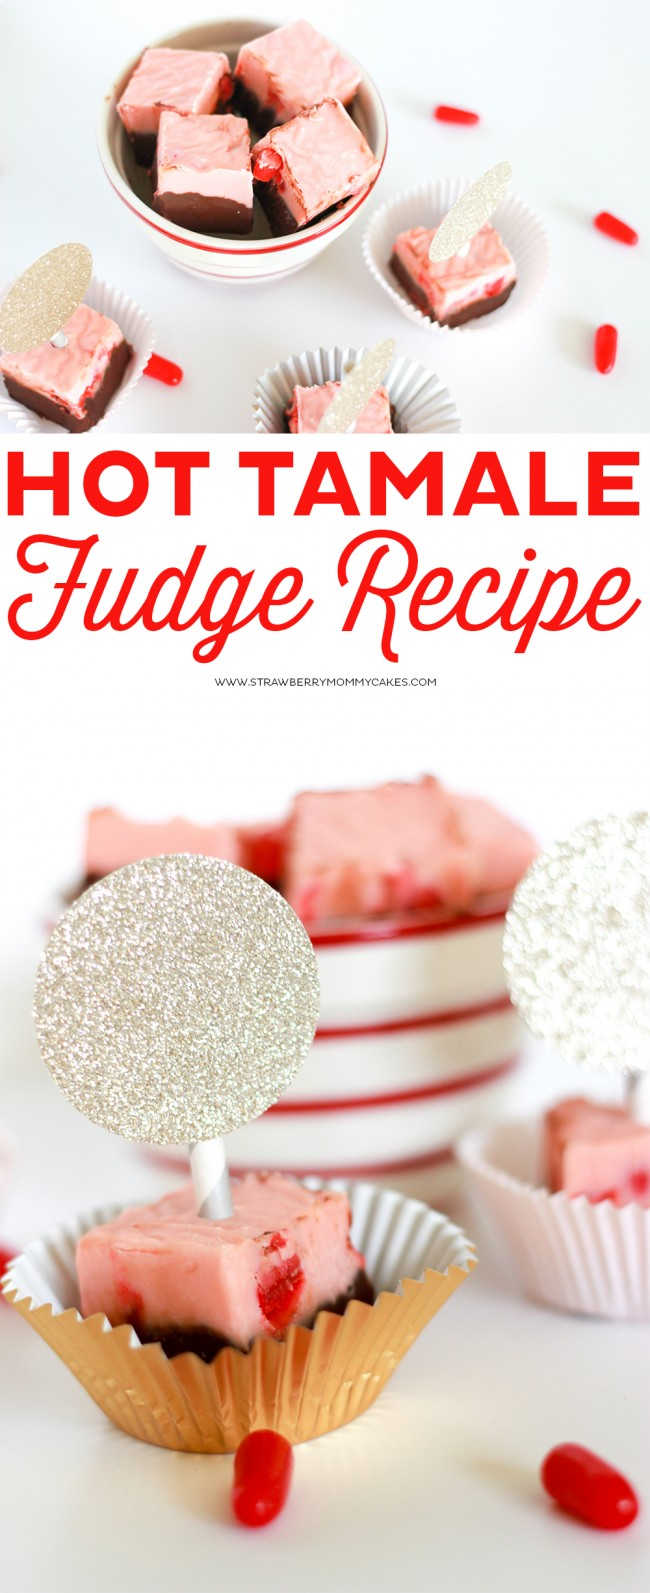 This Hot Tamale Fudge Recipe is an amazingly delicious Valentine's Day Treat! Plus, you'll love all the other Valentine's Day desserts from 11 other Creative Foodies!